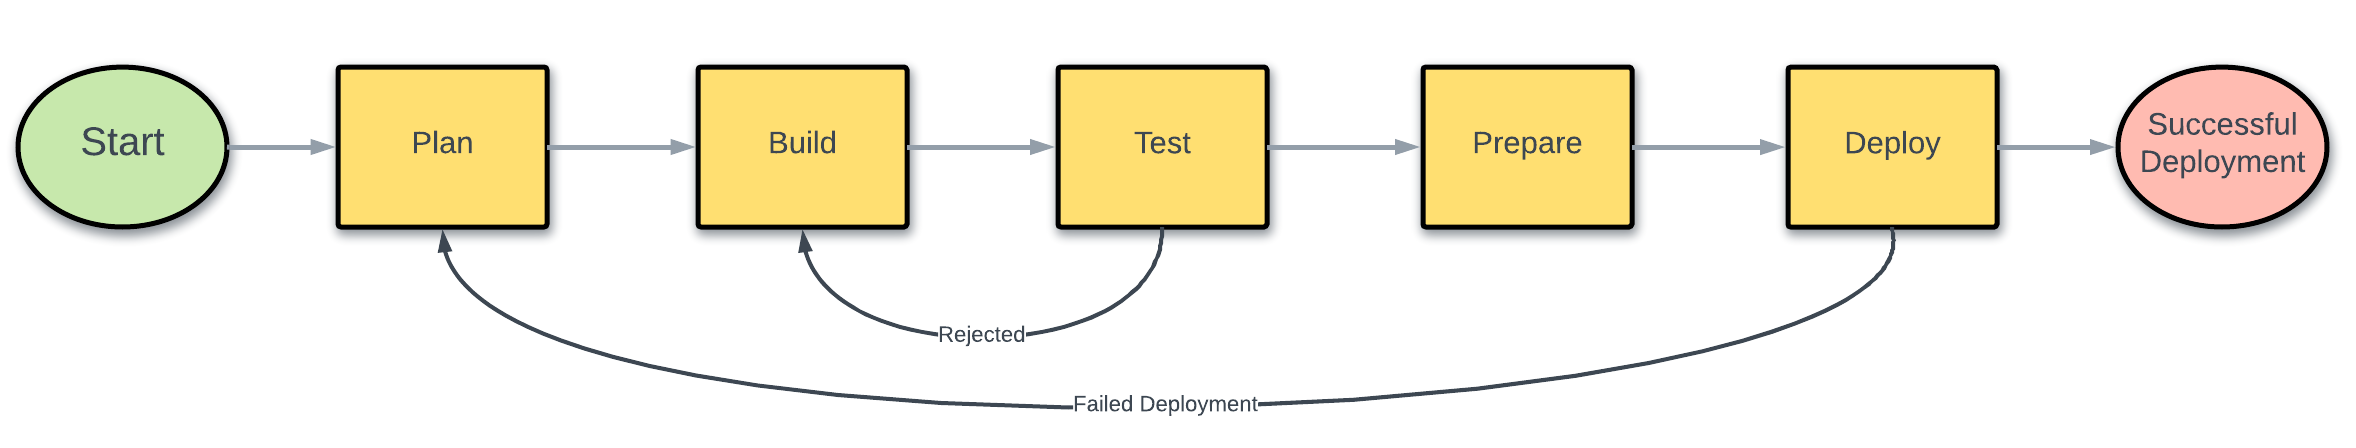 Release Management Process Graphic